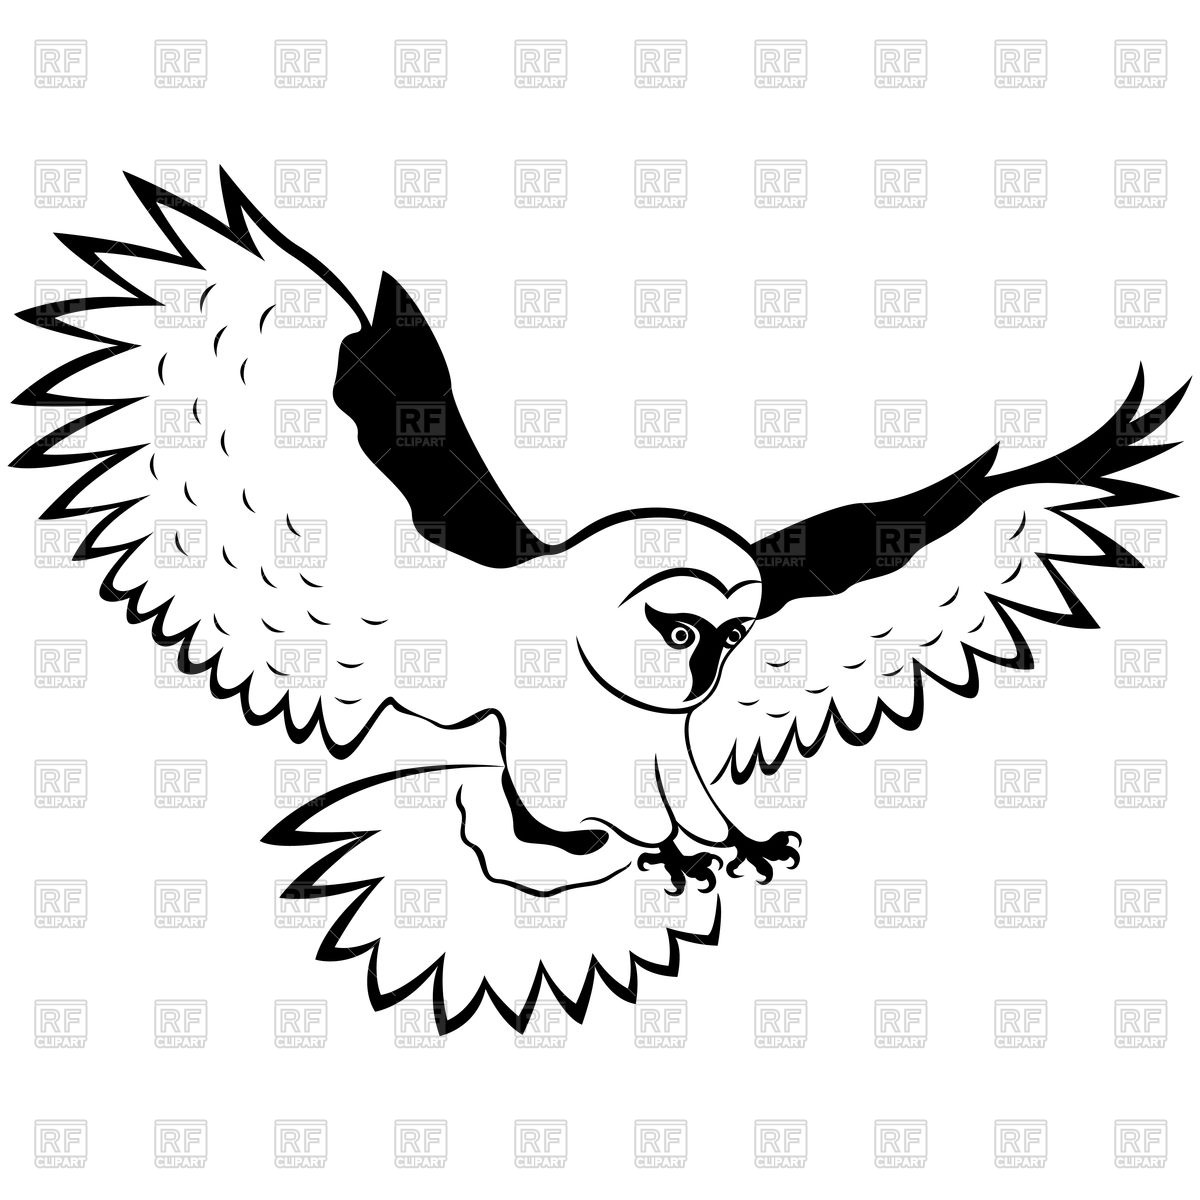 Owl in flight with outstretched wings Vector Image #96692.